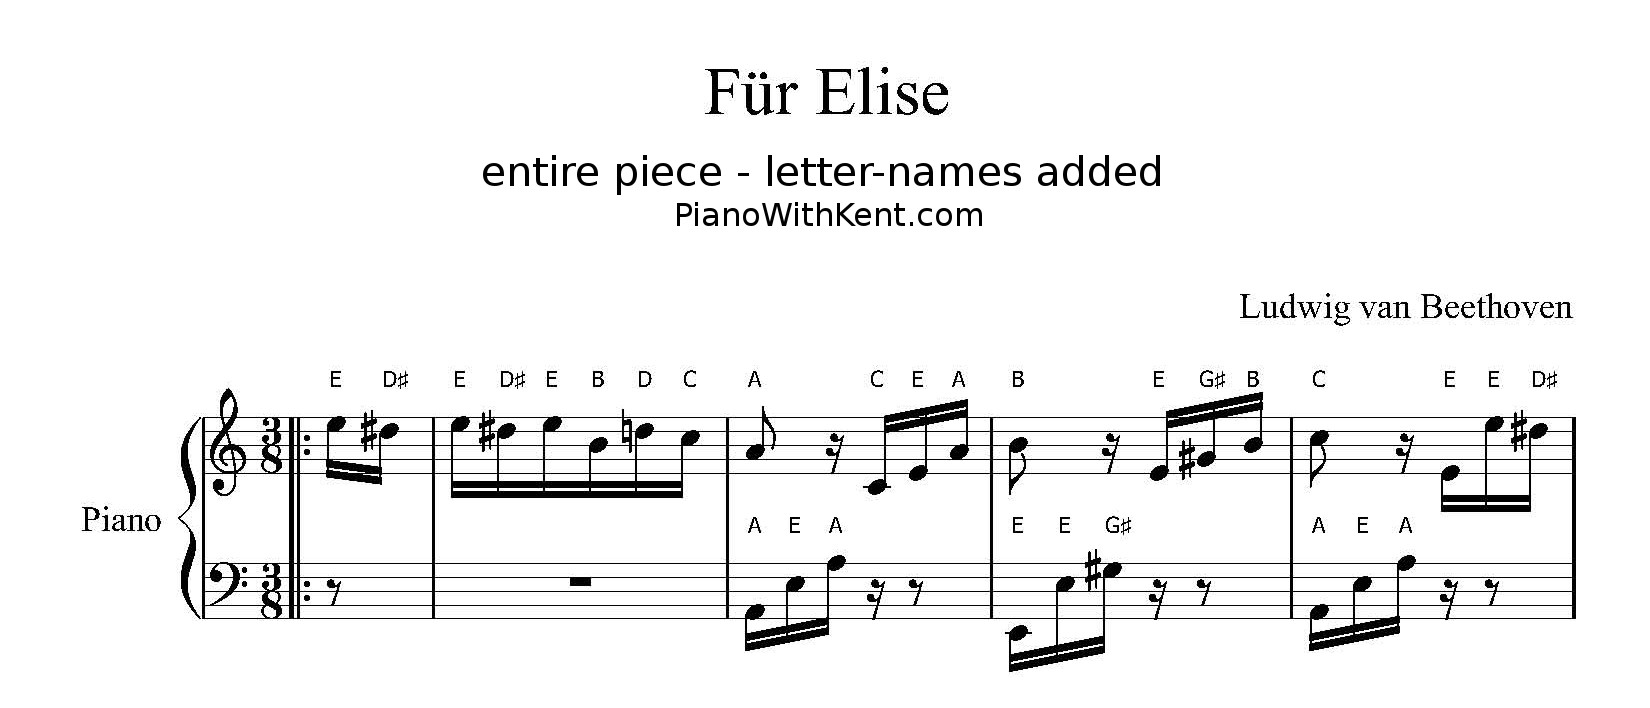 Piano Sheet Music With Letters Instead Of Notes